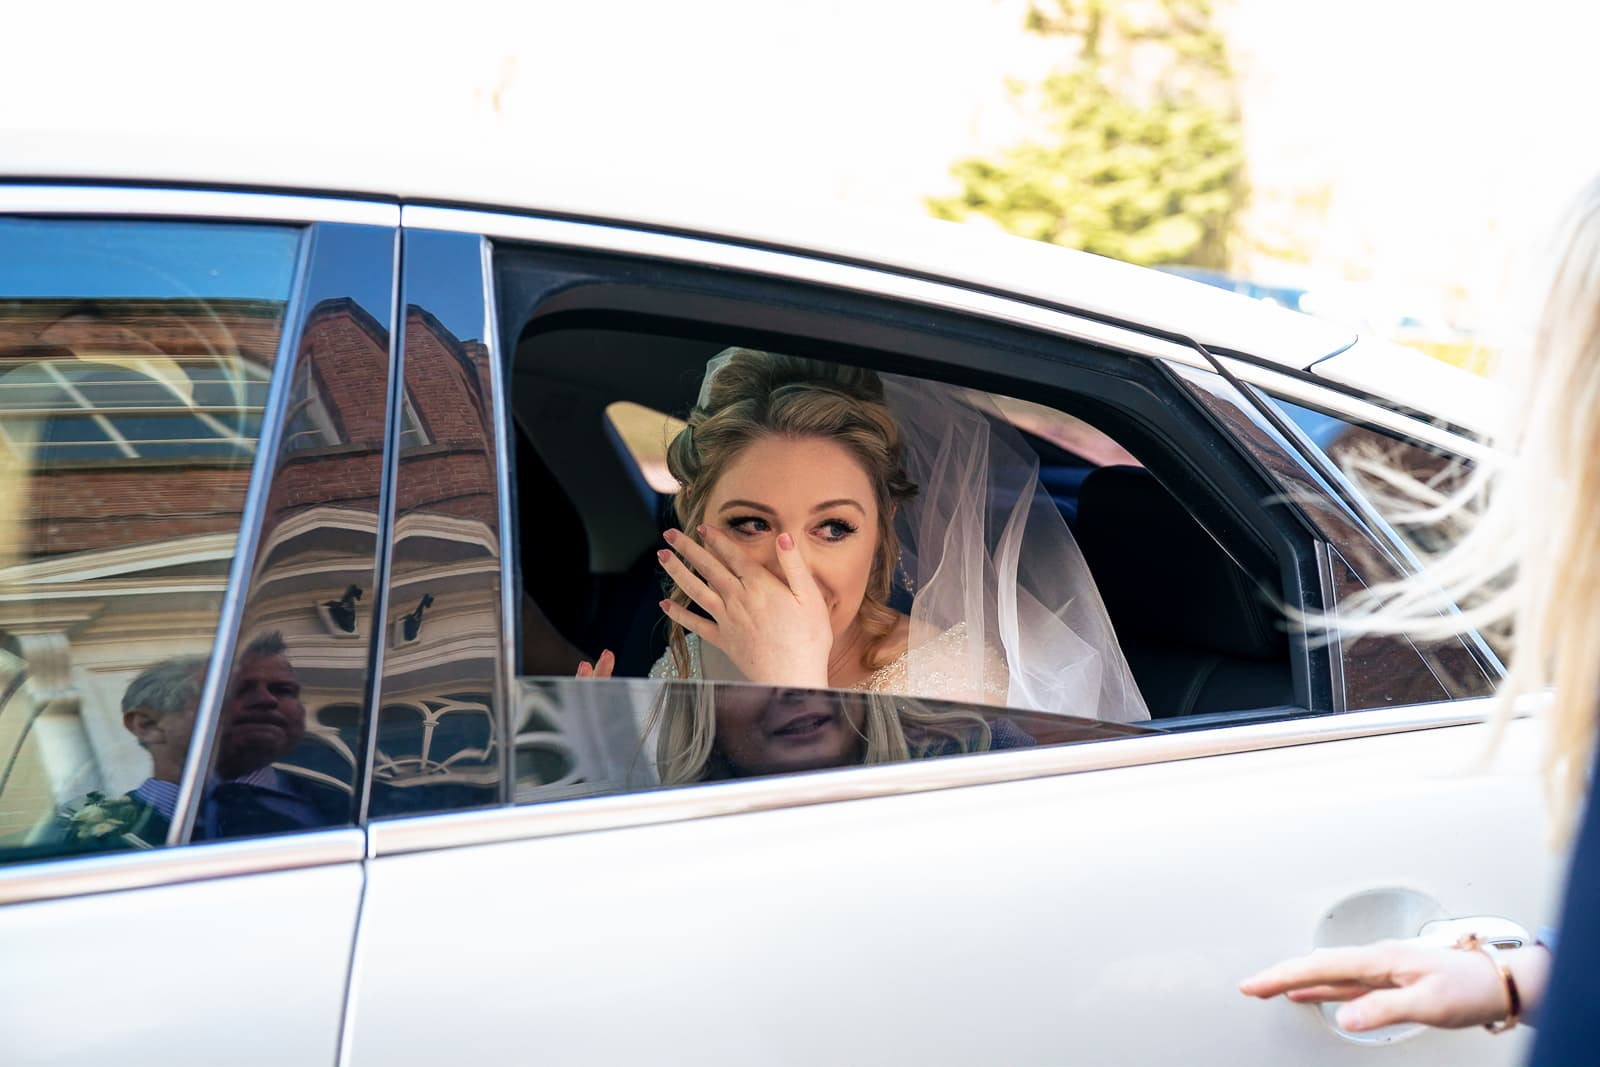 Norwood Park Wedding Photography - Bride arrives for her wedding ceremony at Norwood Park